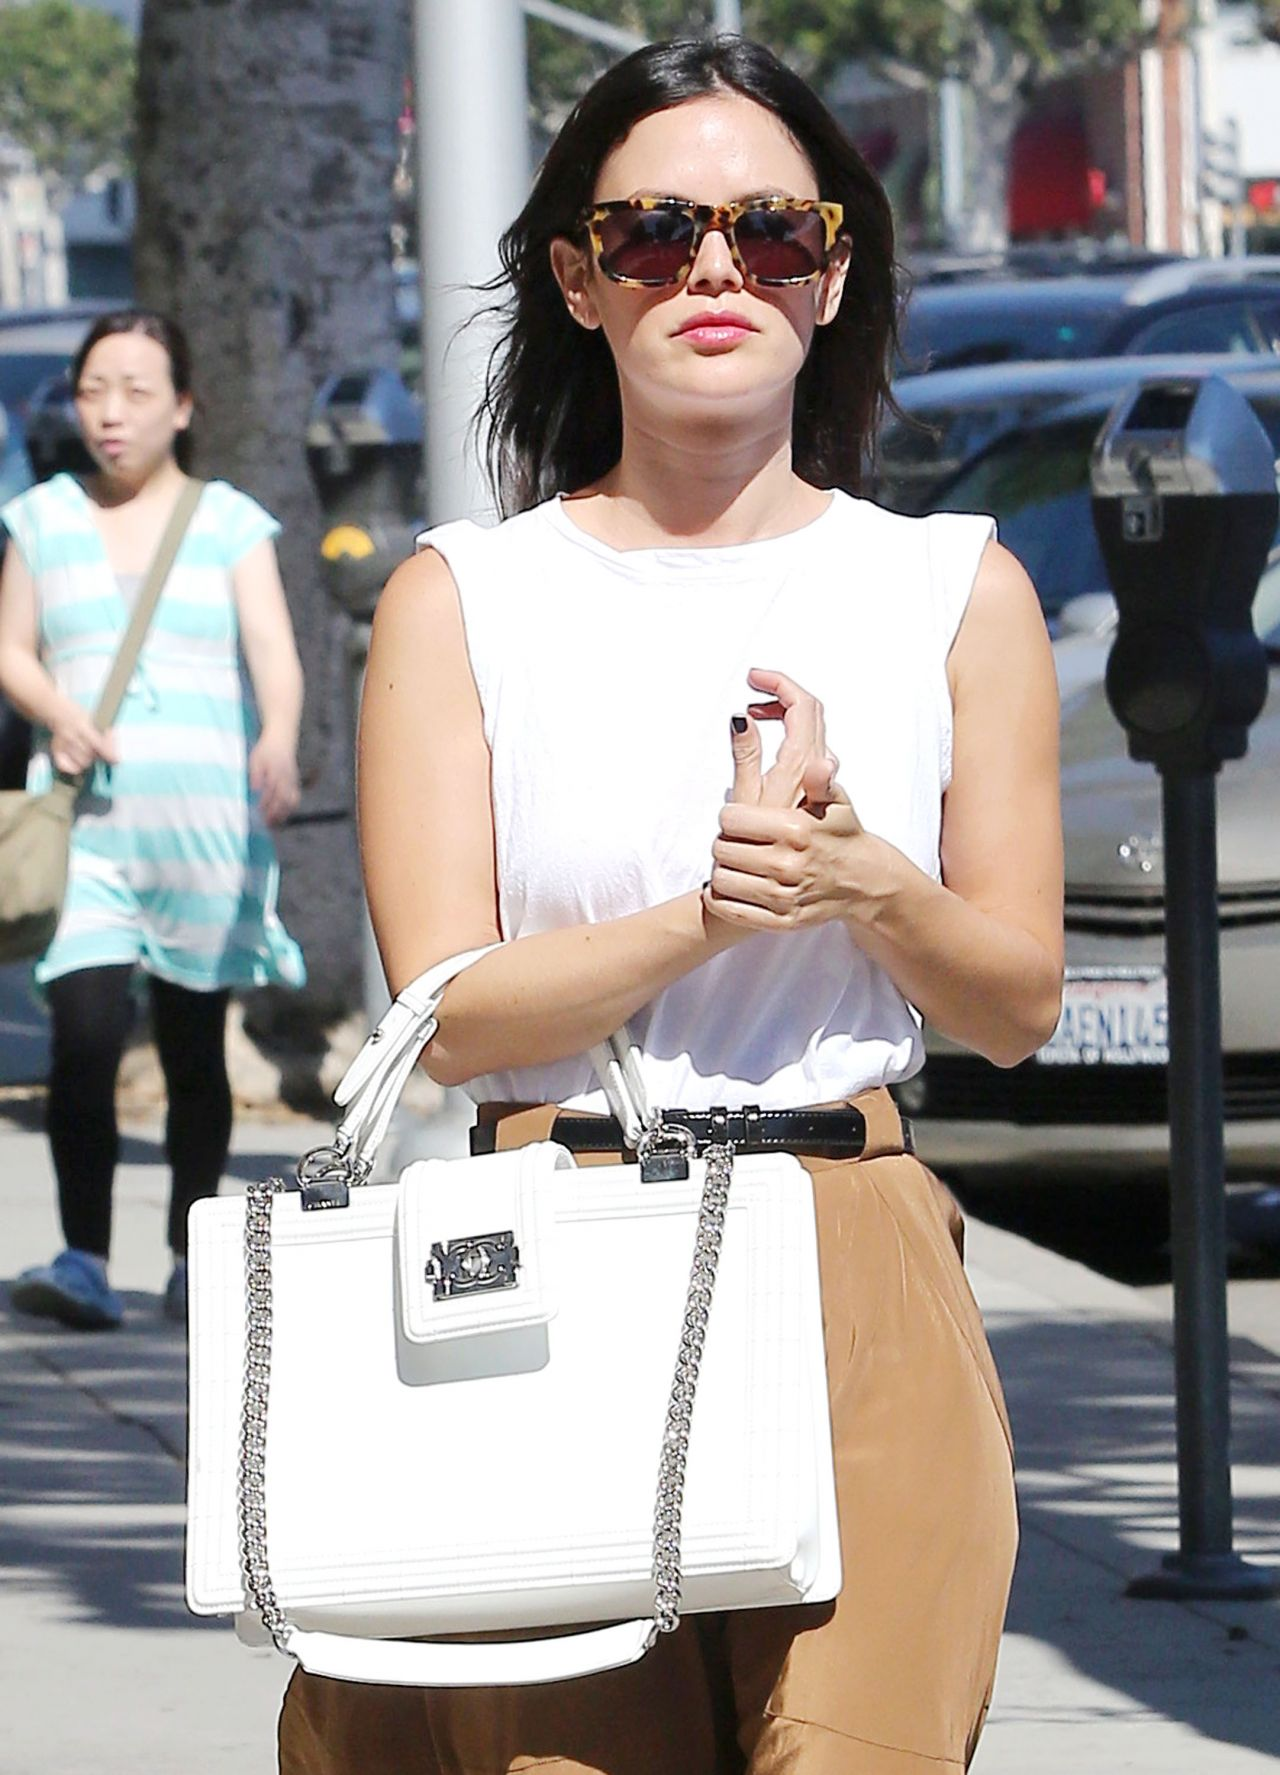 Rachel Bilson at Urth Caffe in Beverly Hills